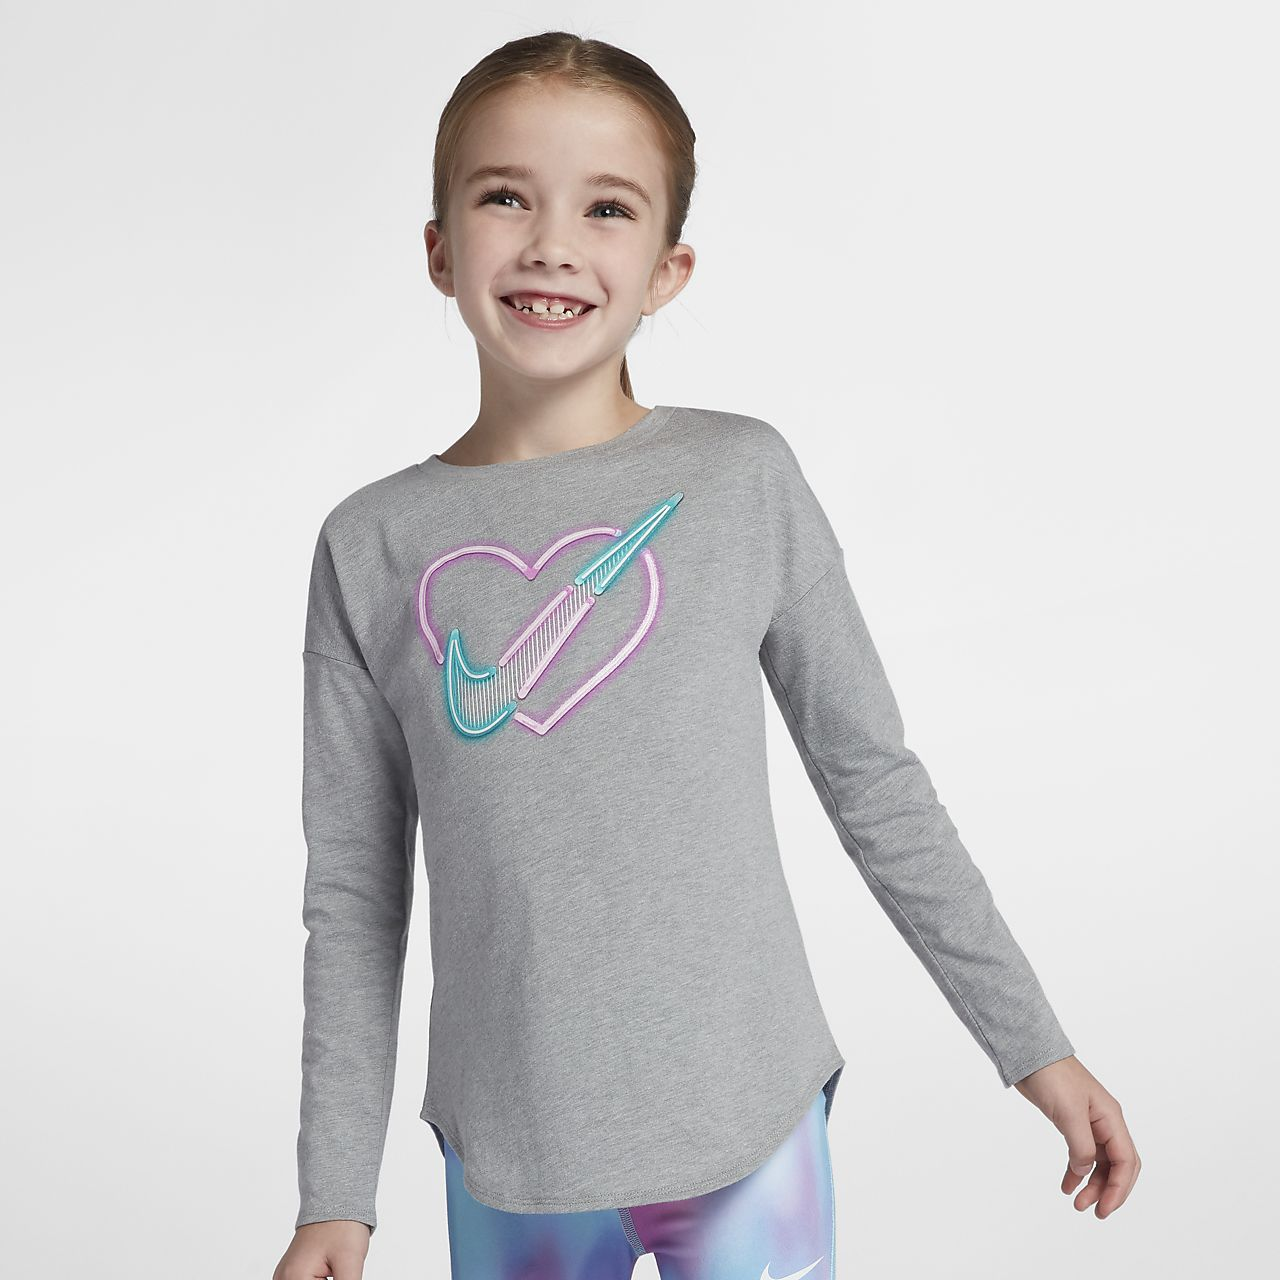 Nike Little Kids' Long-Sleeve T-Shirt